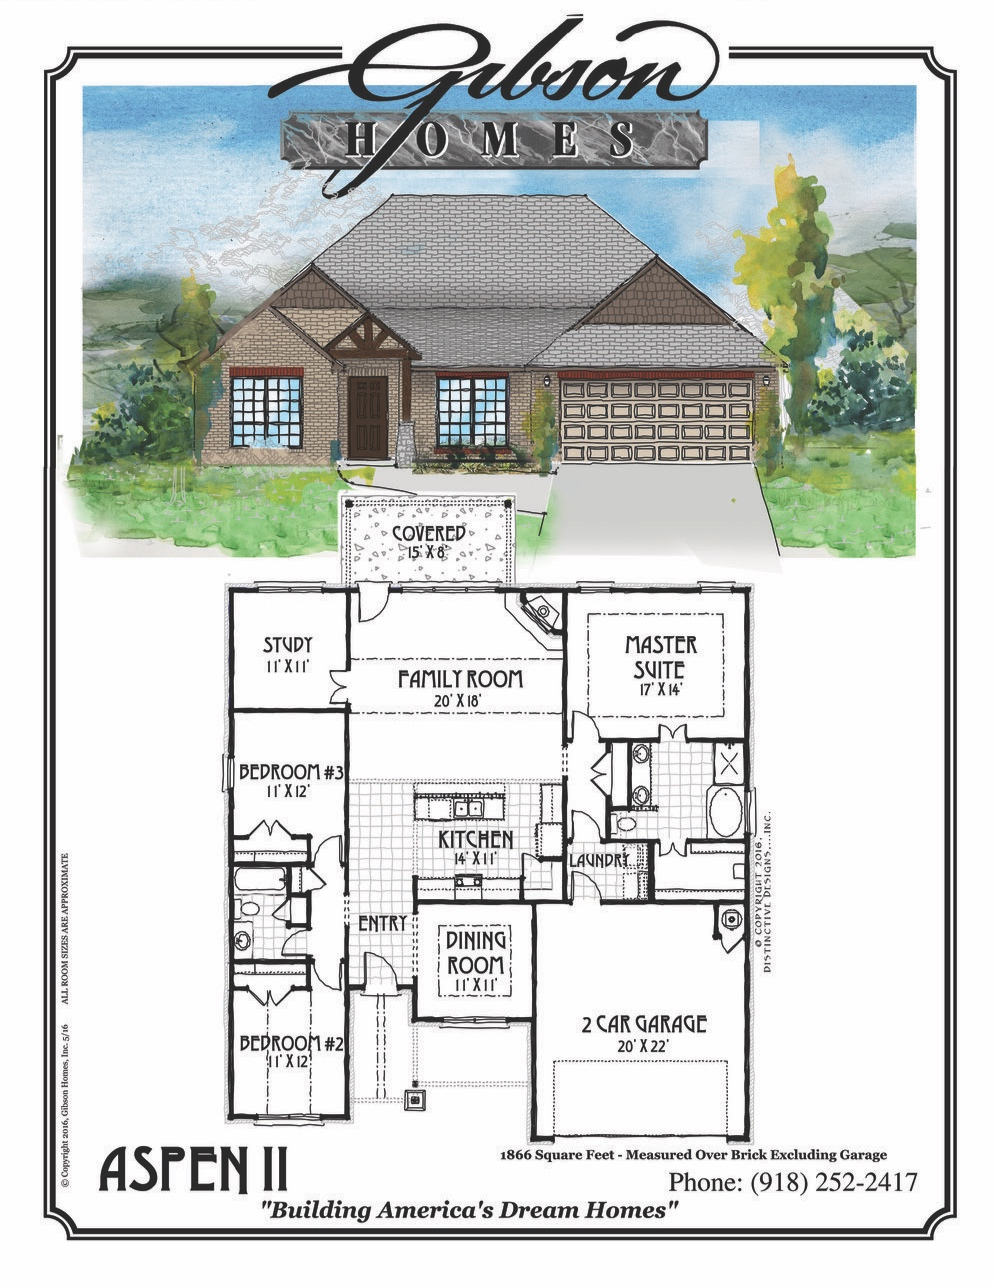 ASPEN II - 1866 Sq. Feet3 bedroom2 bathrooms2 car garageStudyDining RoomBase Price $180,000